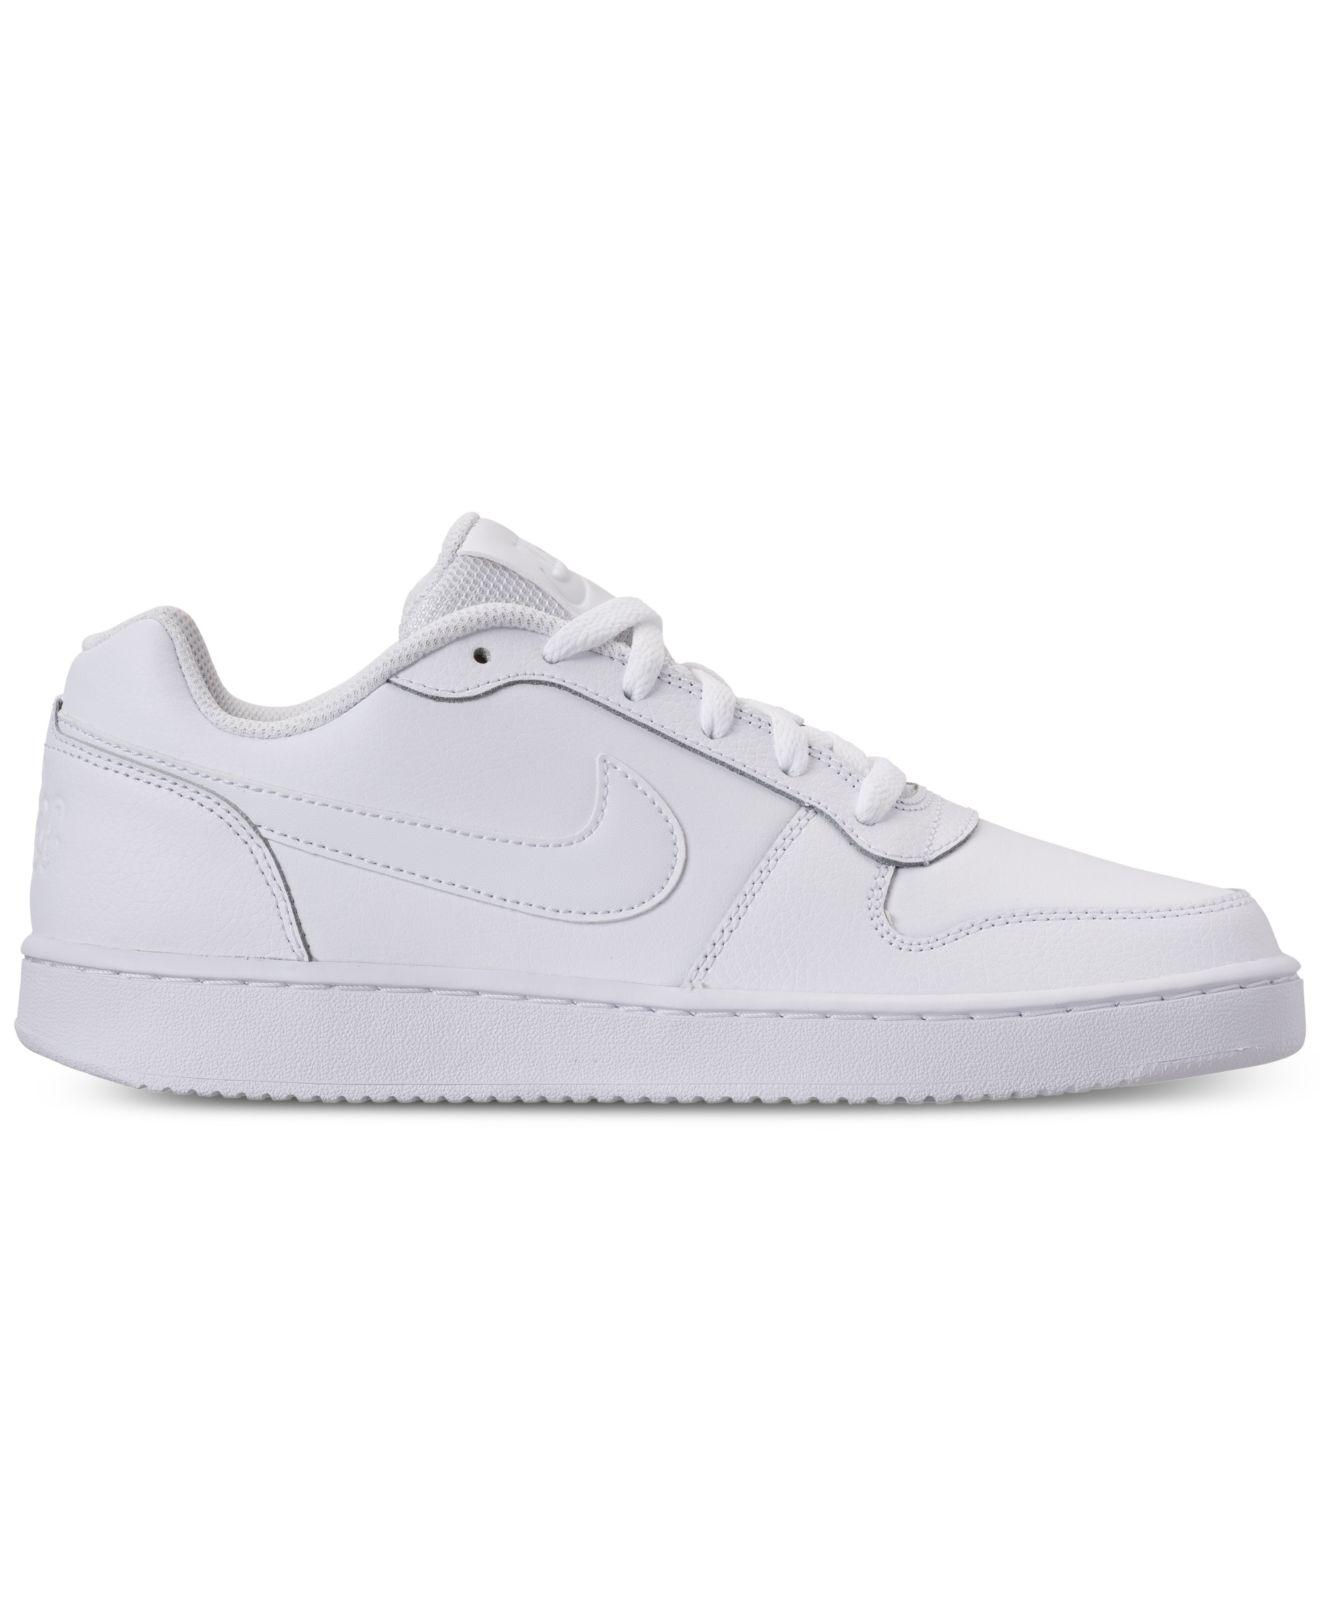 Lyst - Nike Ebernon Low Casual Sneakers From Finish Line in White for Men 9df4587cf8